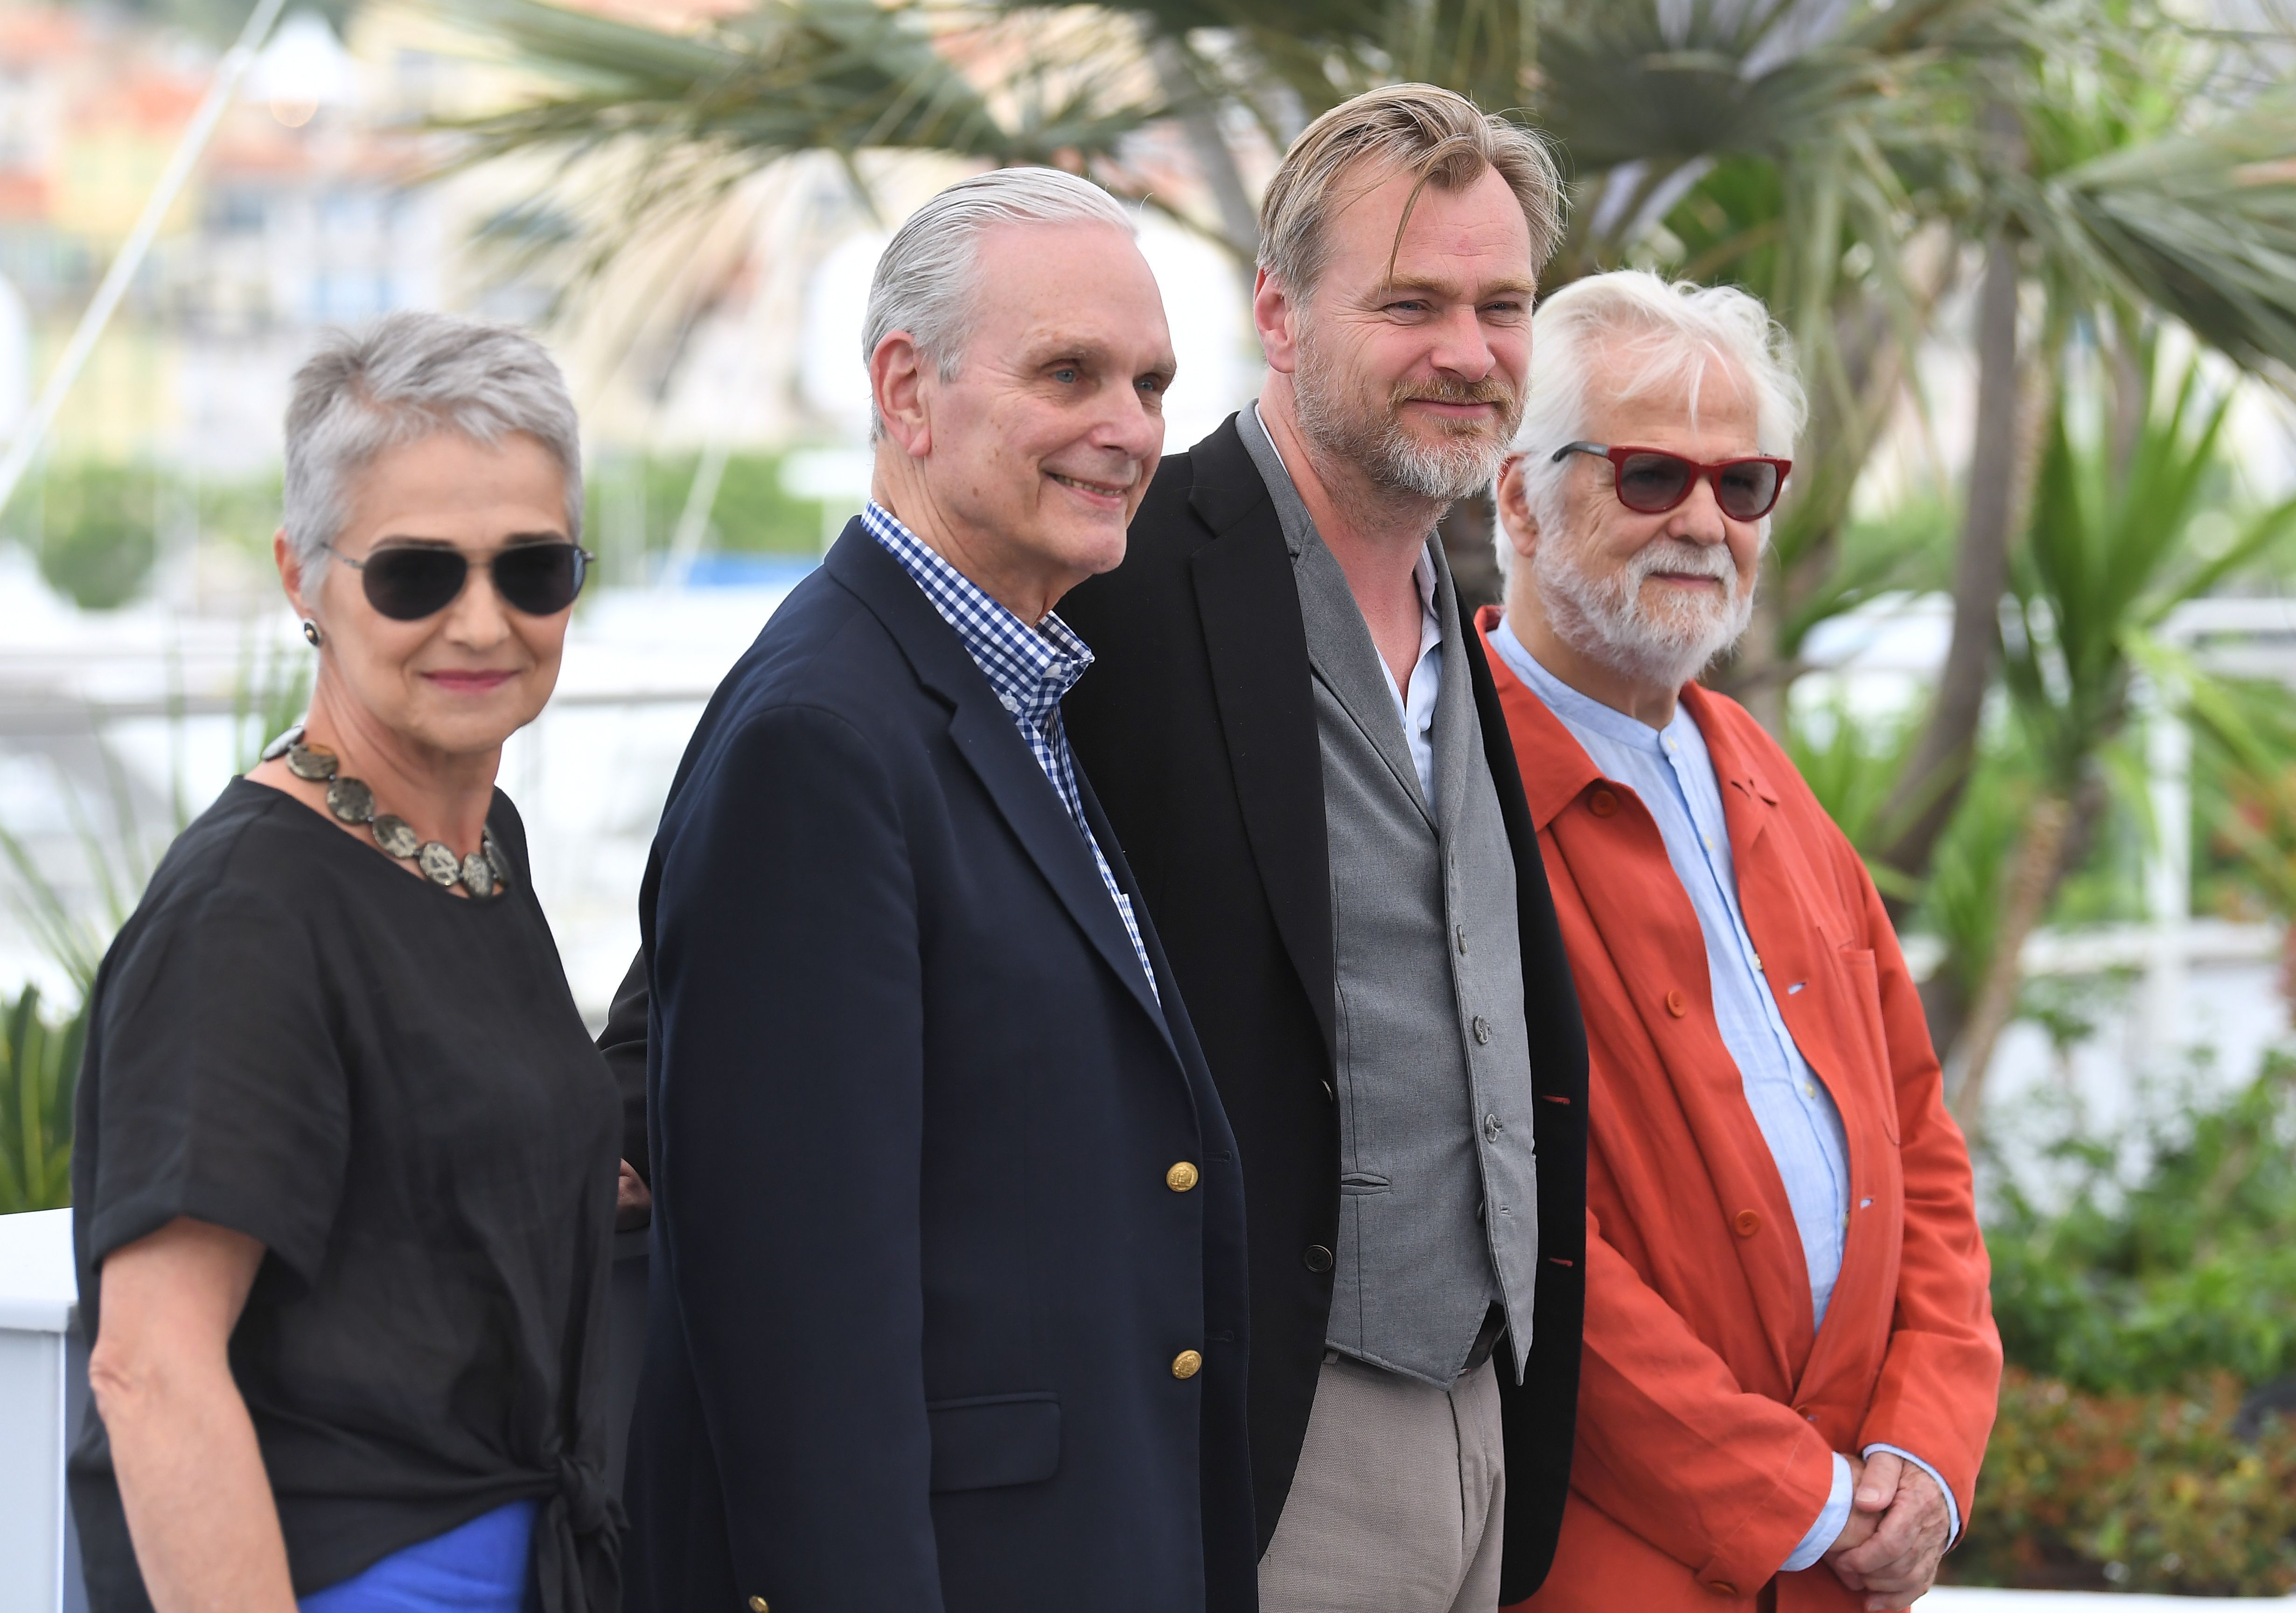 Katharina Kubrick, Keir Dullea, Christopher Nolan and Jan HarlanChristopher Nolan photocall, 71st Cannes Film Festival, France - 12 May 2018